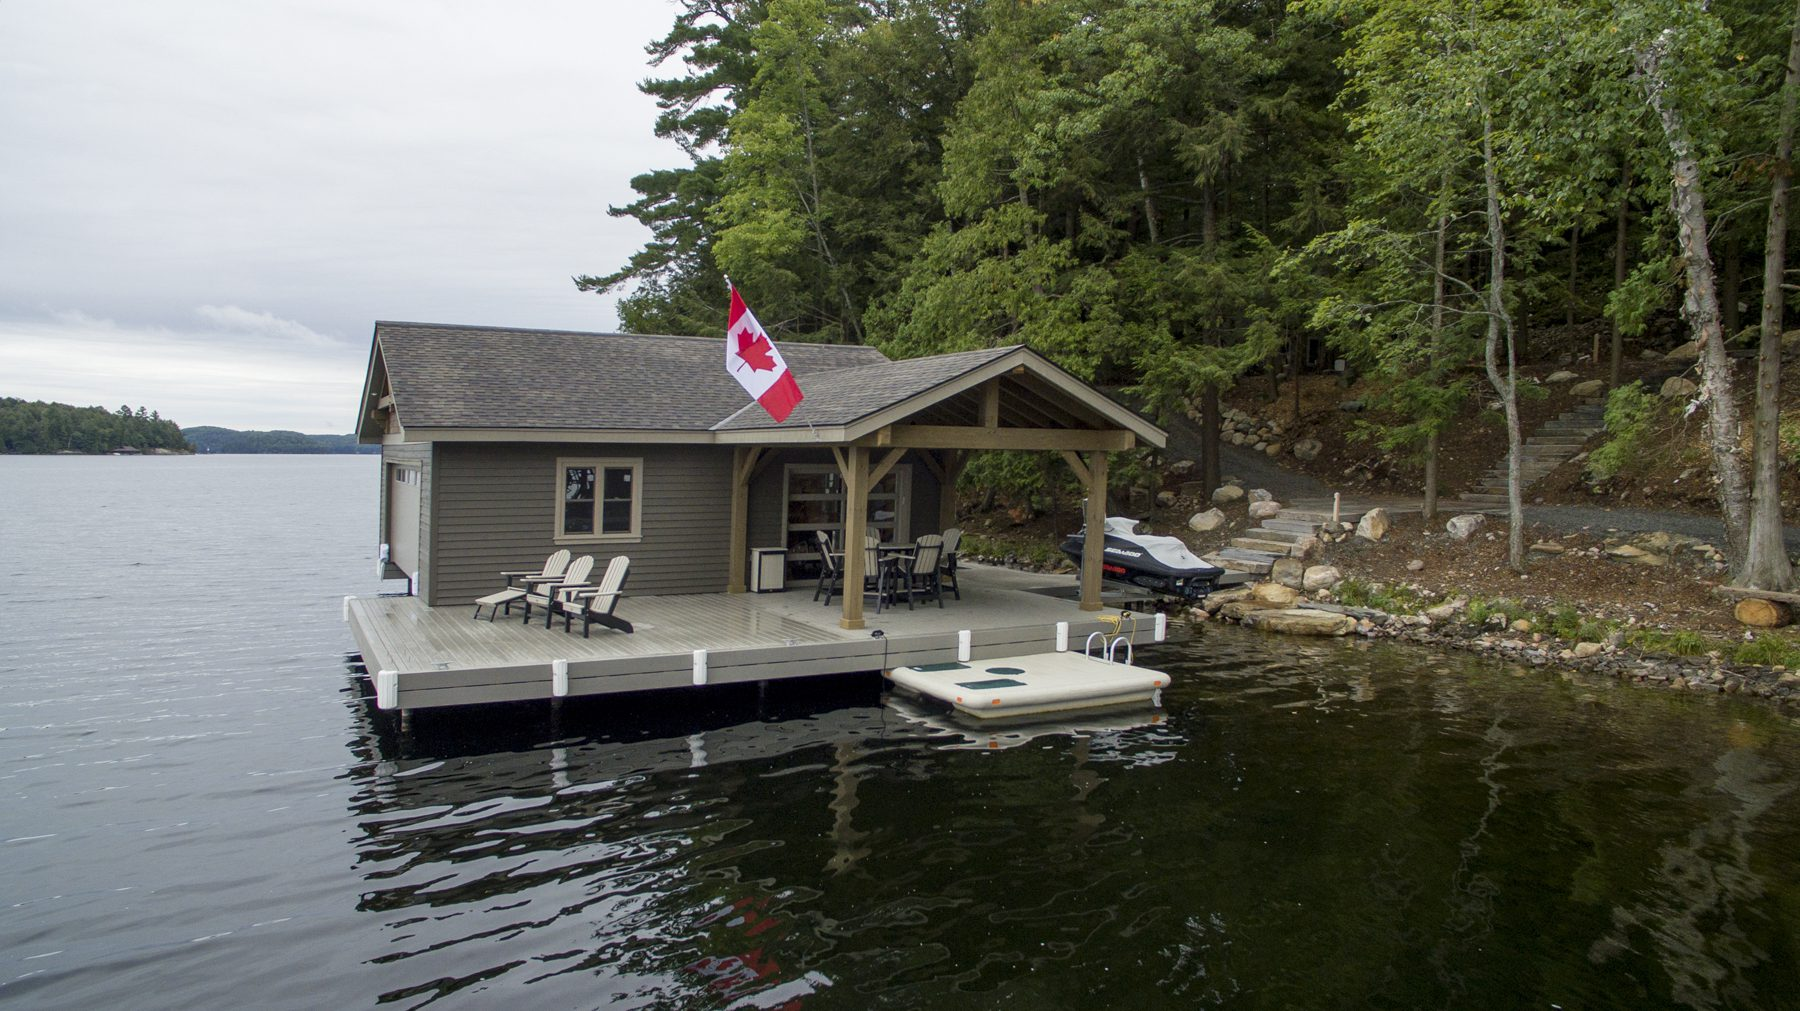 Normerica Timber Frame, Exterior, Cottage, Lake, Boathouse 2